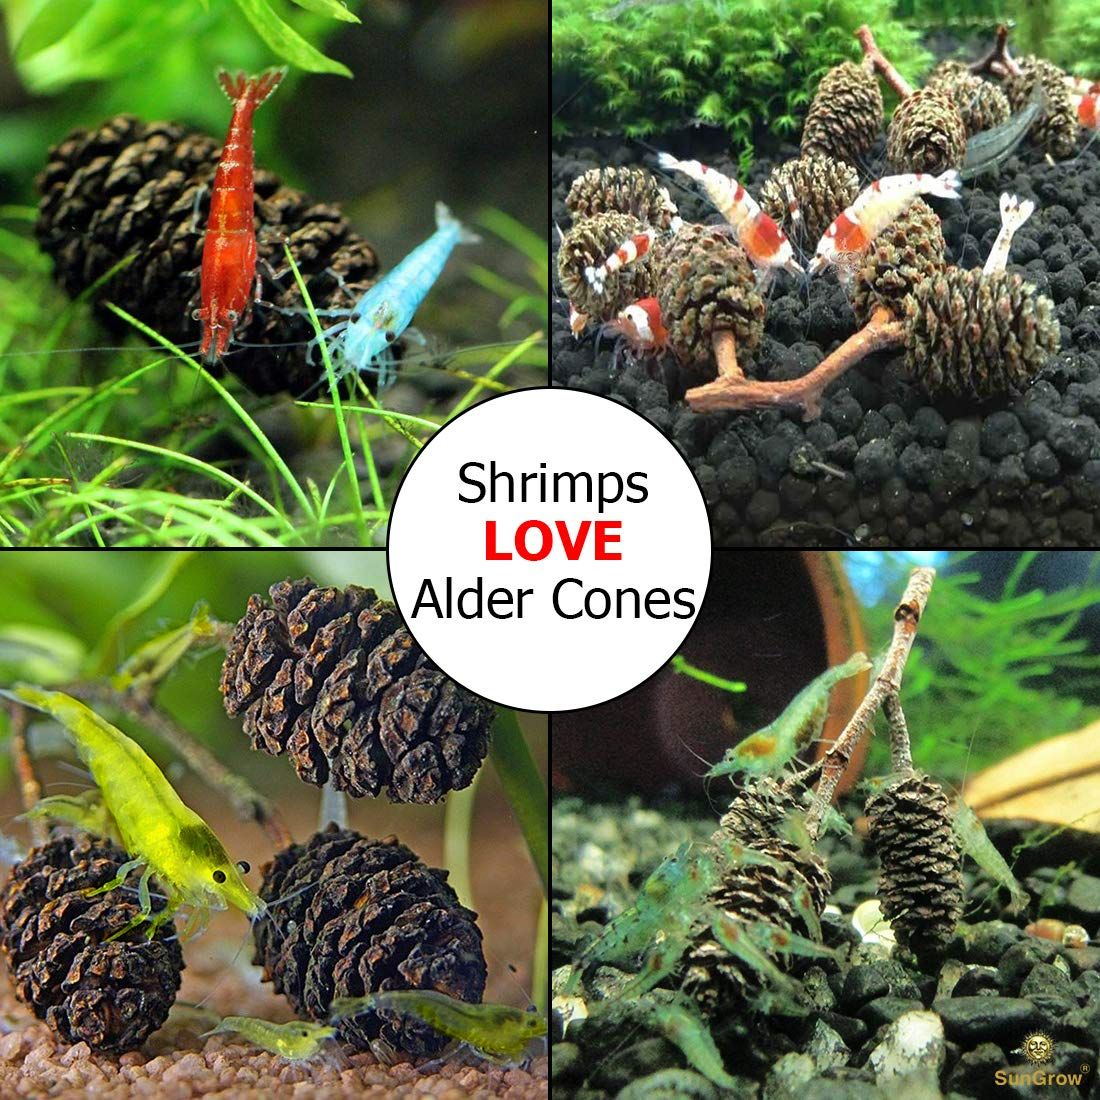 fresh water aquarium shrimp Alder Cones for Shrimps ...